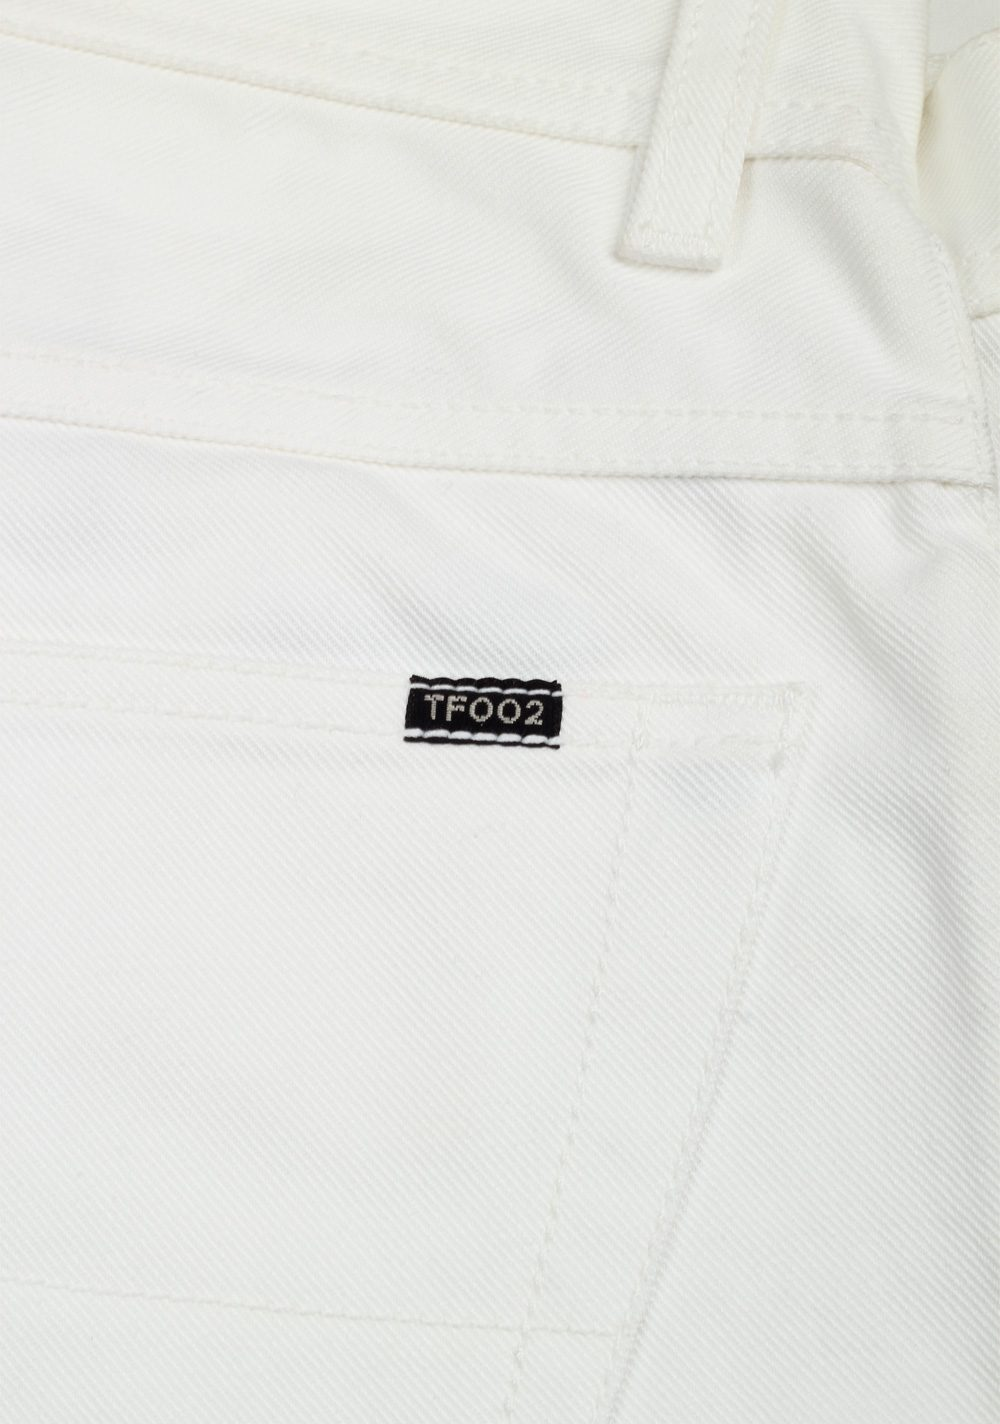 TOM FORD TF002 White Jeans Size 50 / 34 U.S. | Costume Limité